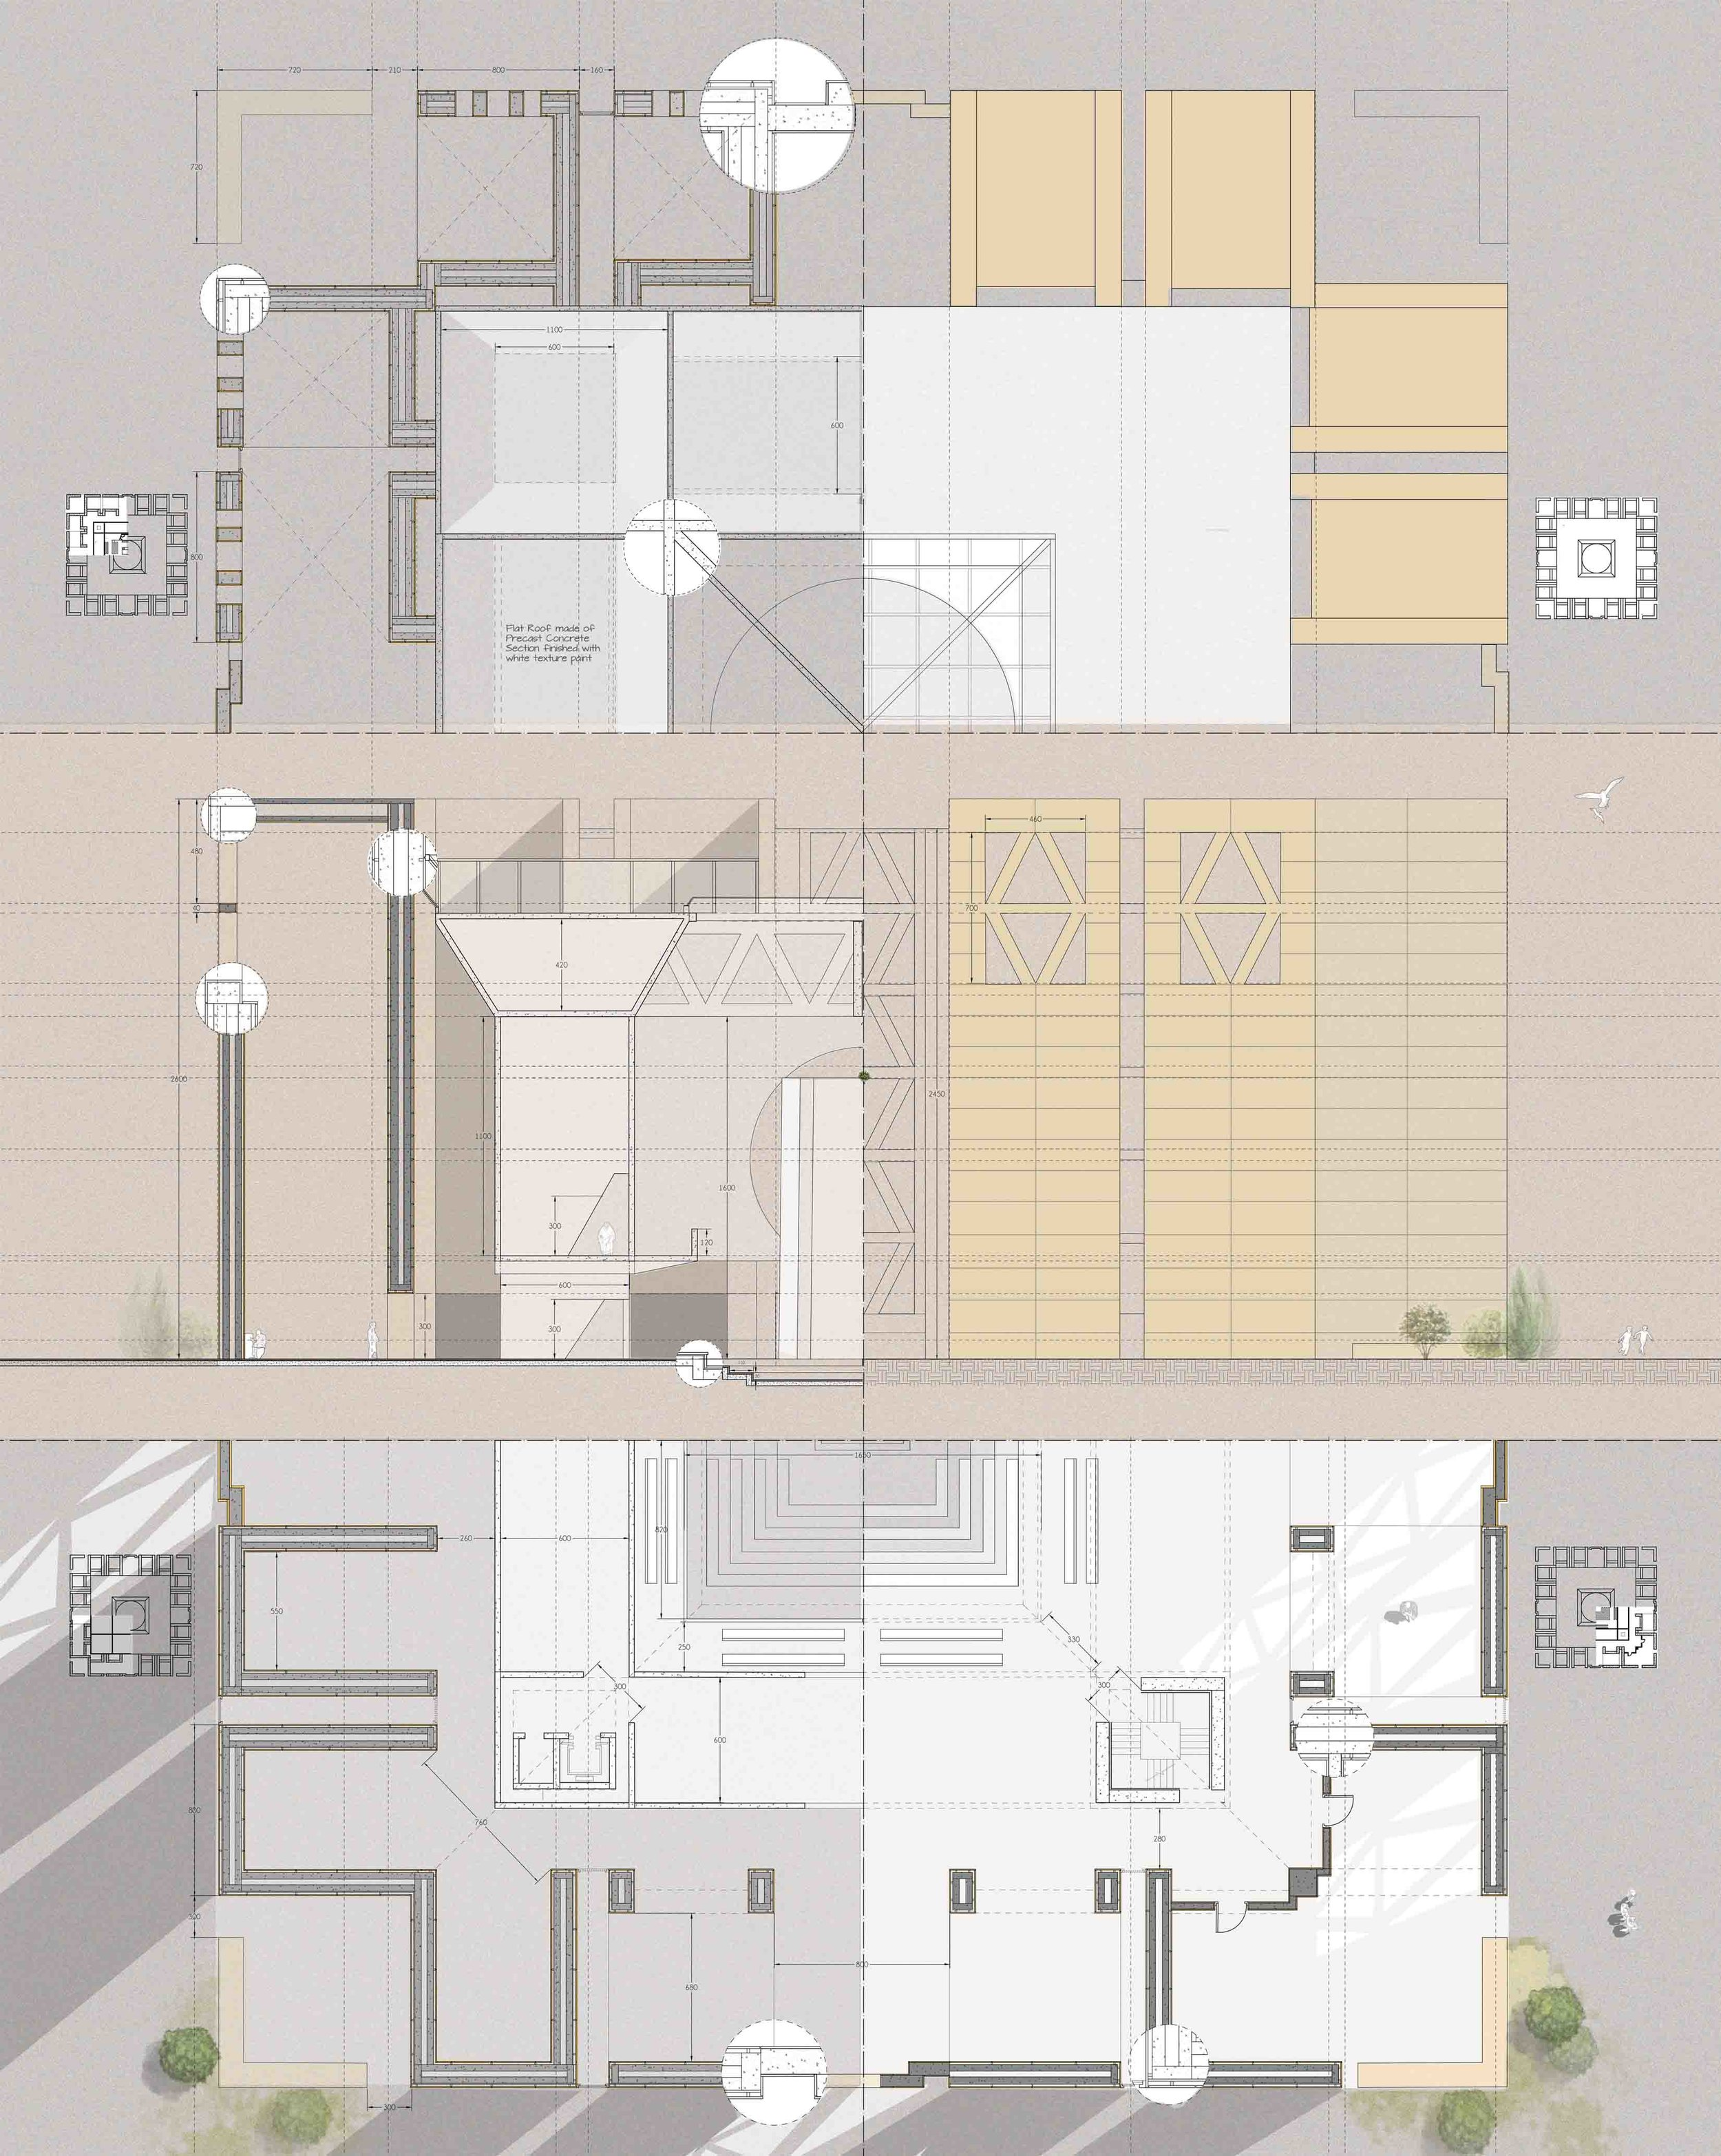 Composite drawing of all the four floor plans, juxtaposed with the sectional elevation, with the use of materiality and texture to emphasize light and shadow.